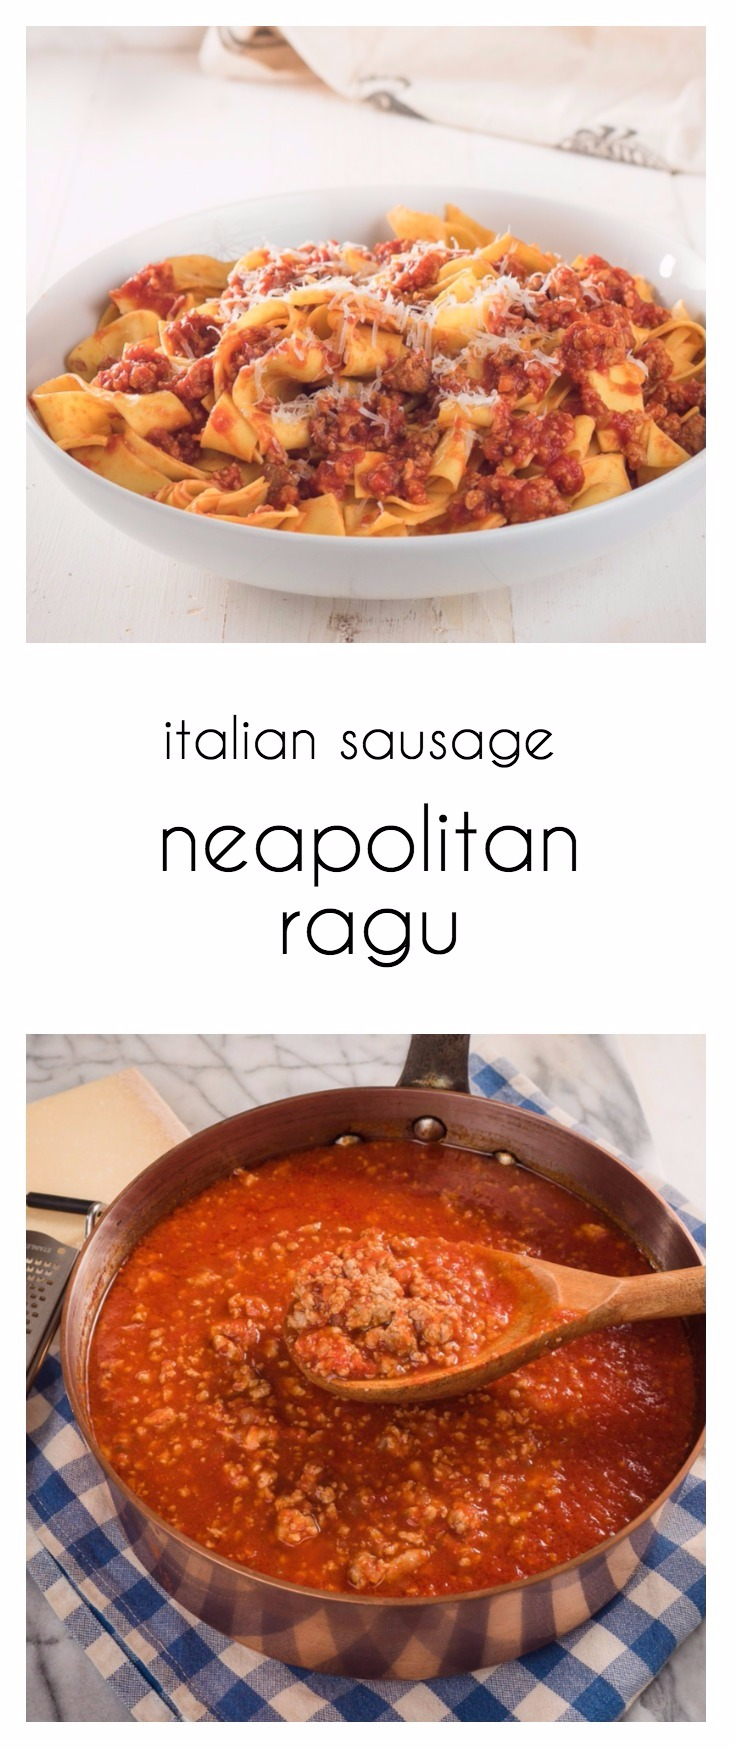 Neapolitan ragu is loaded with big Italian sausage and tomato flavour.